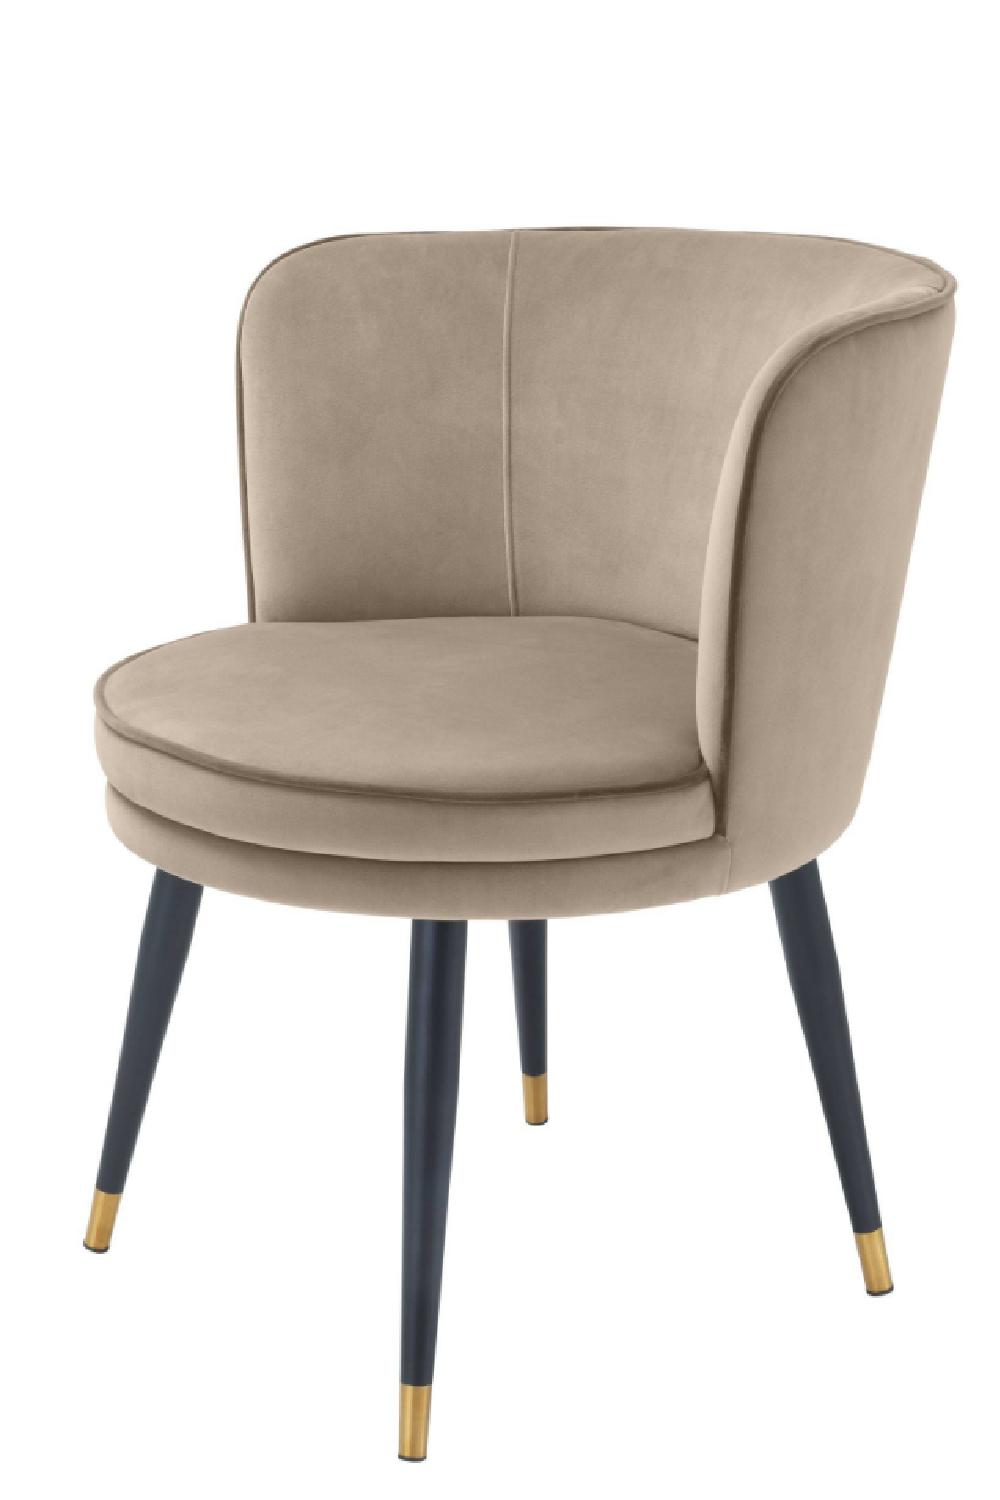 Greige Velvet Dining Chair | Eichholtz Grenada | OROA Luxury Furniture